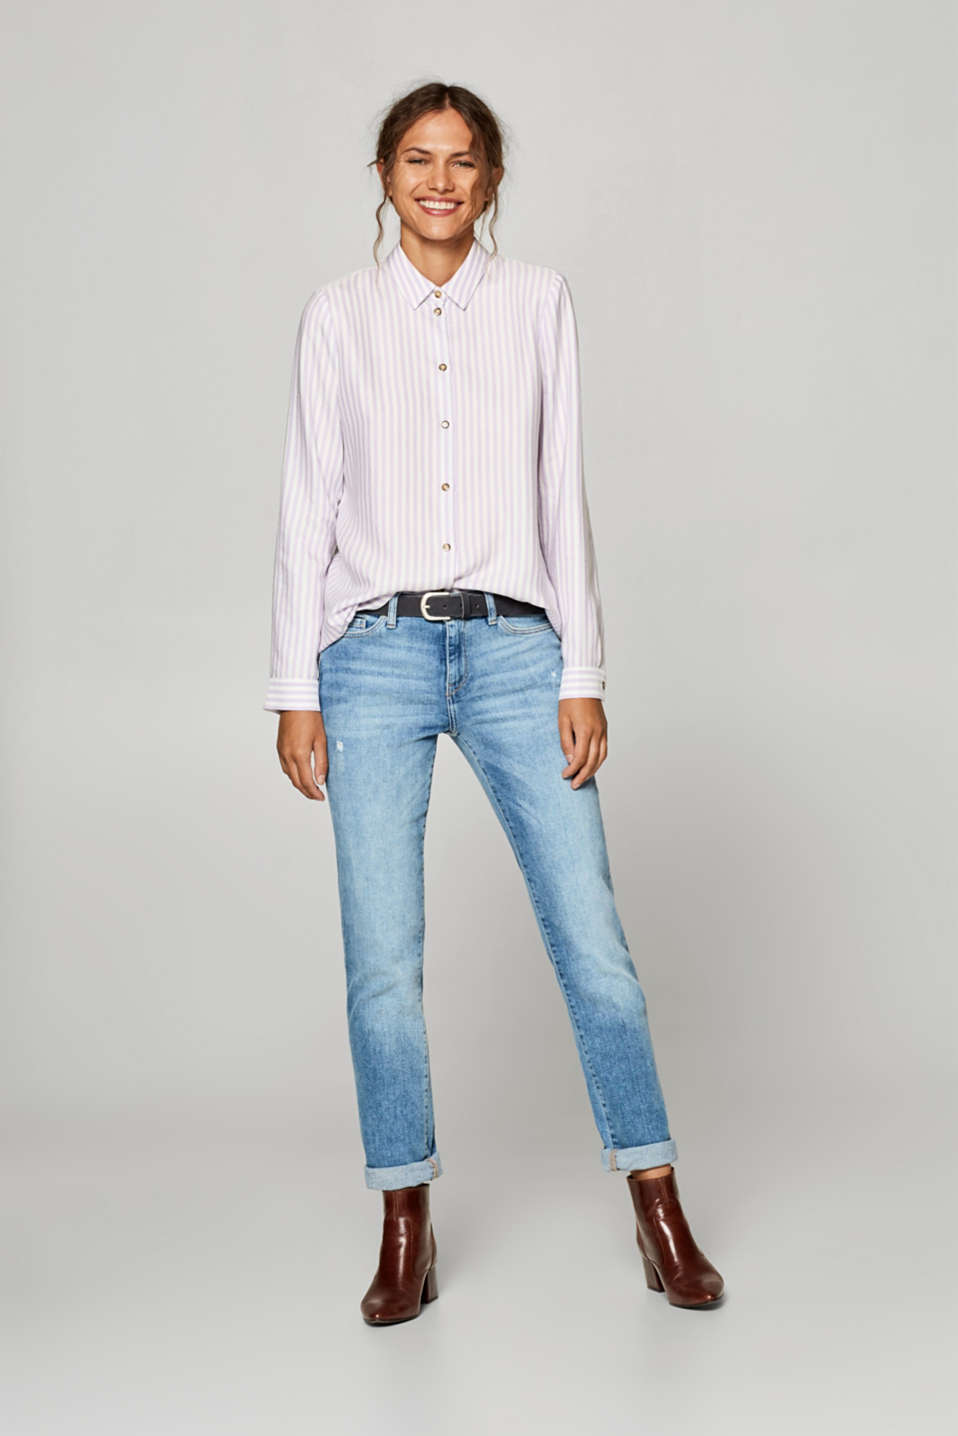 Shirt blouse with vertical stripes